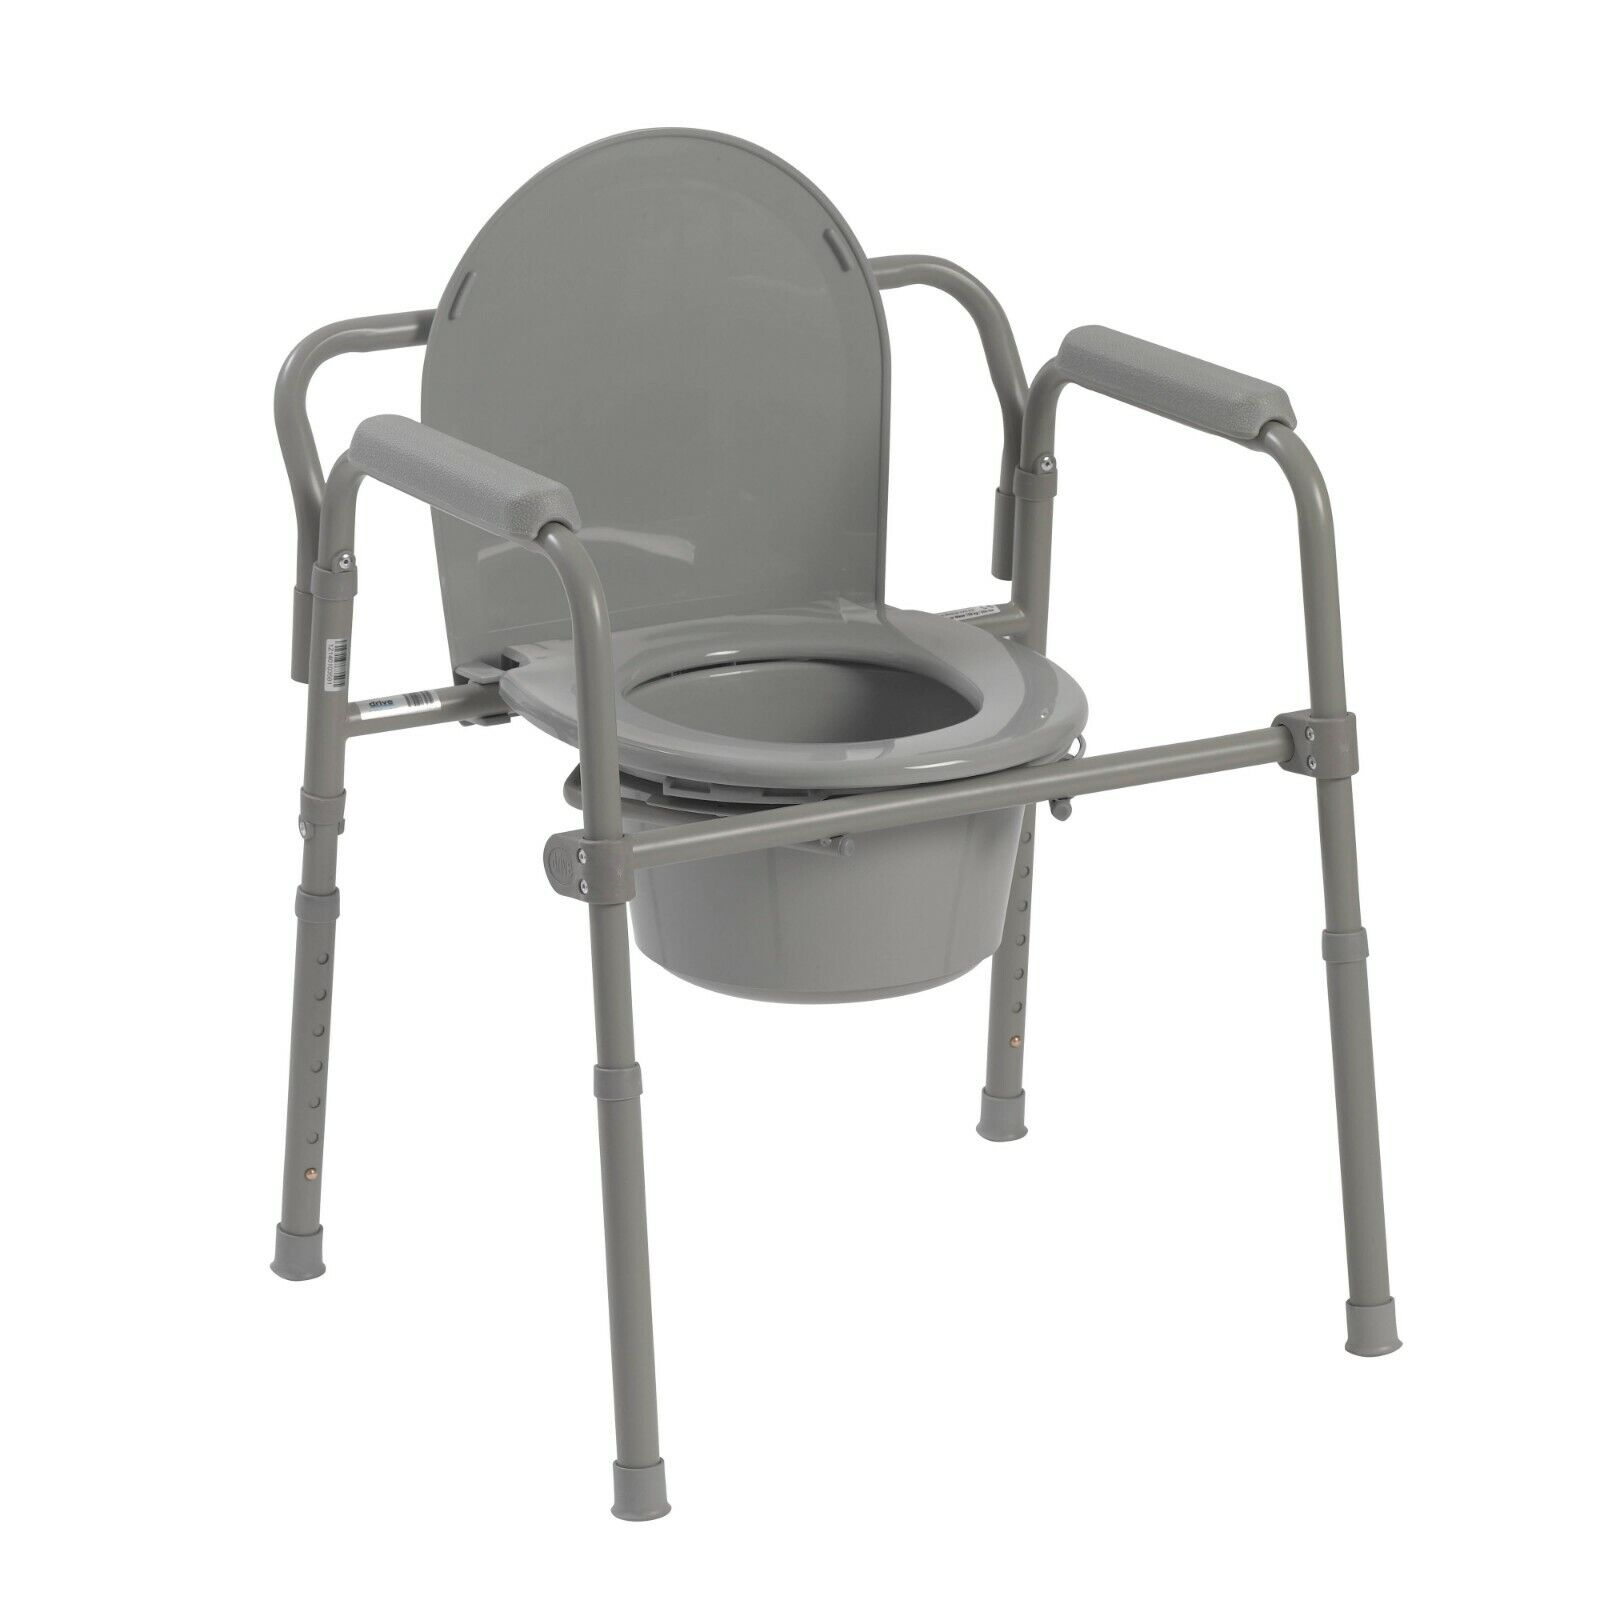 toilet seat potty chair folding commode chamber